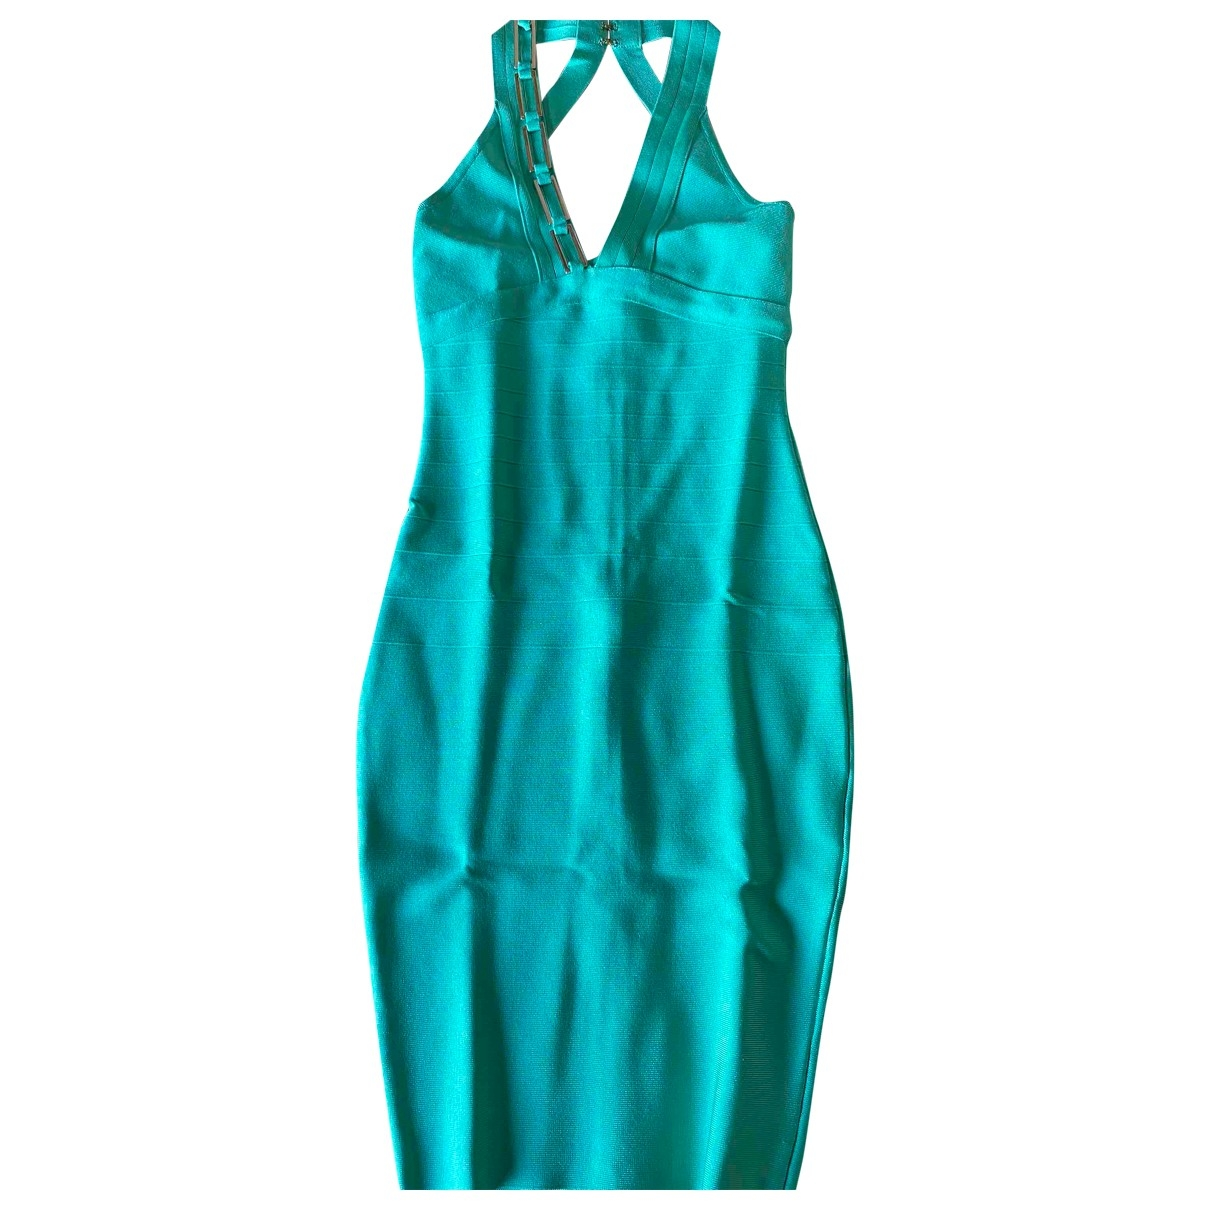 Guess \N Turquoise dress for Women XS International